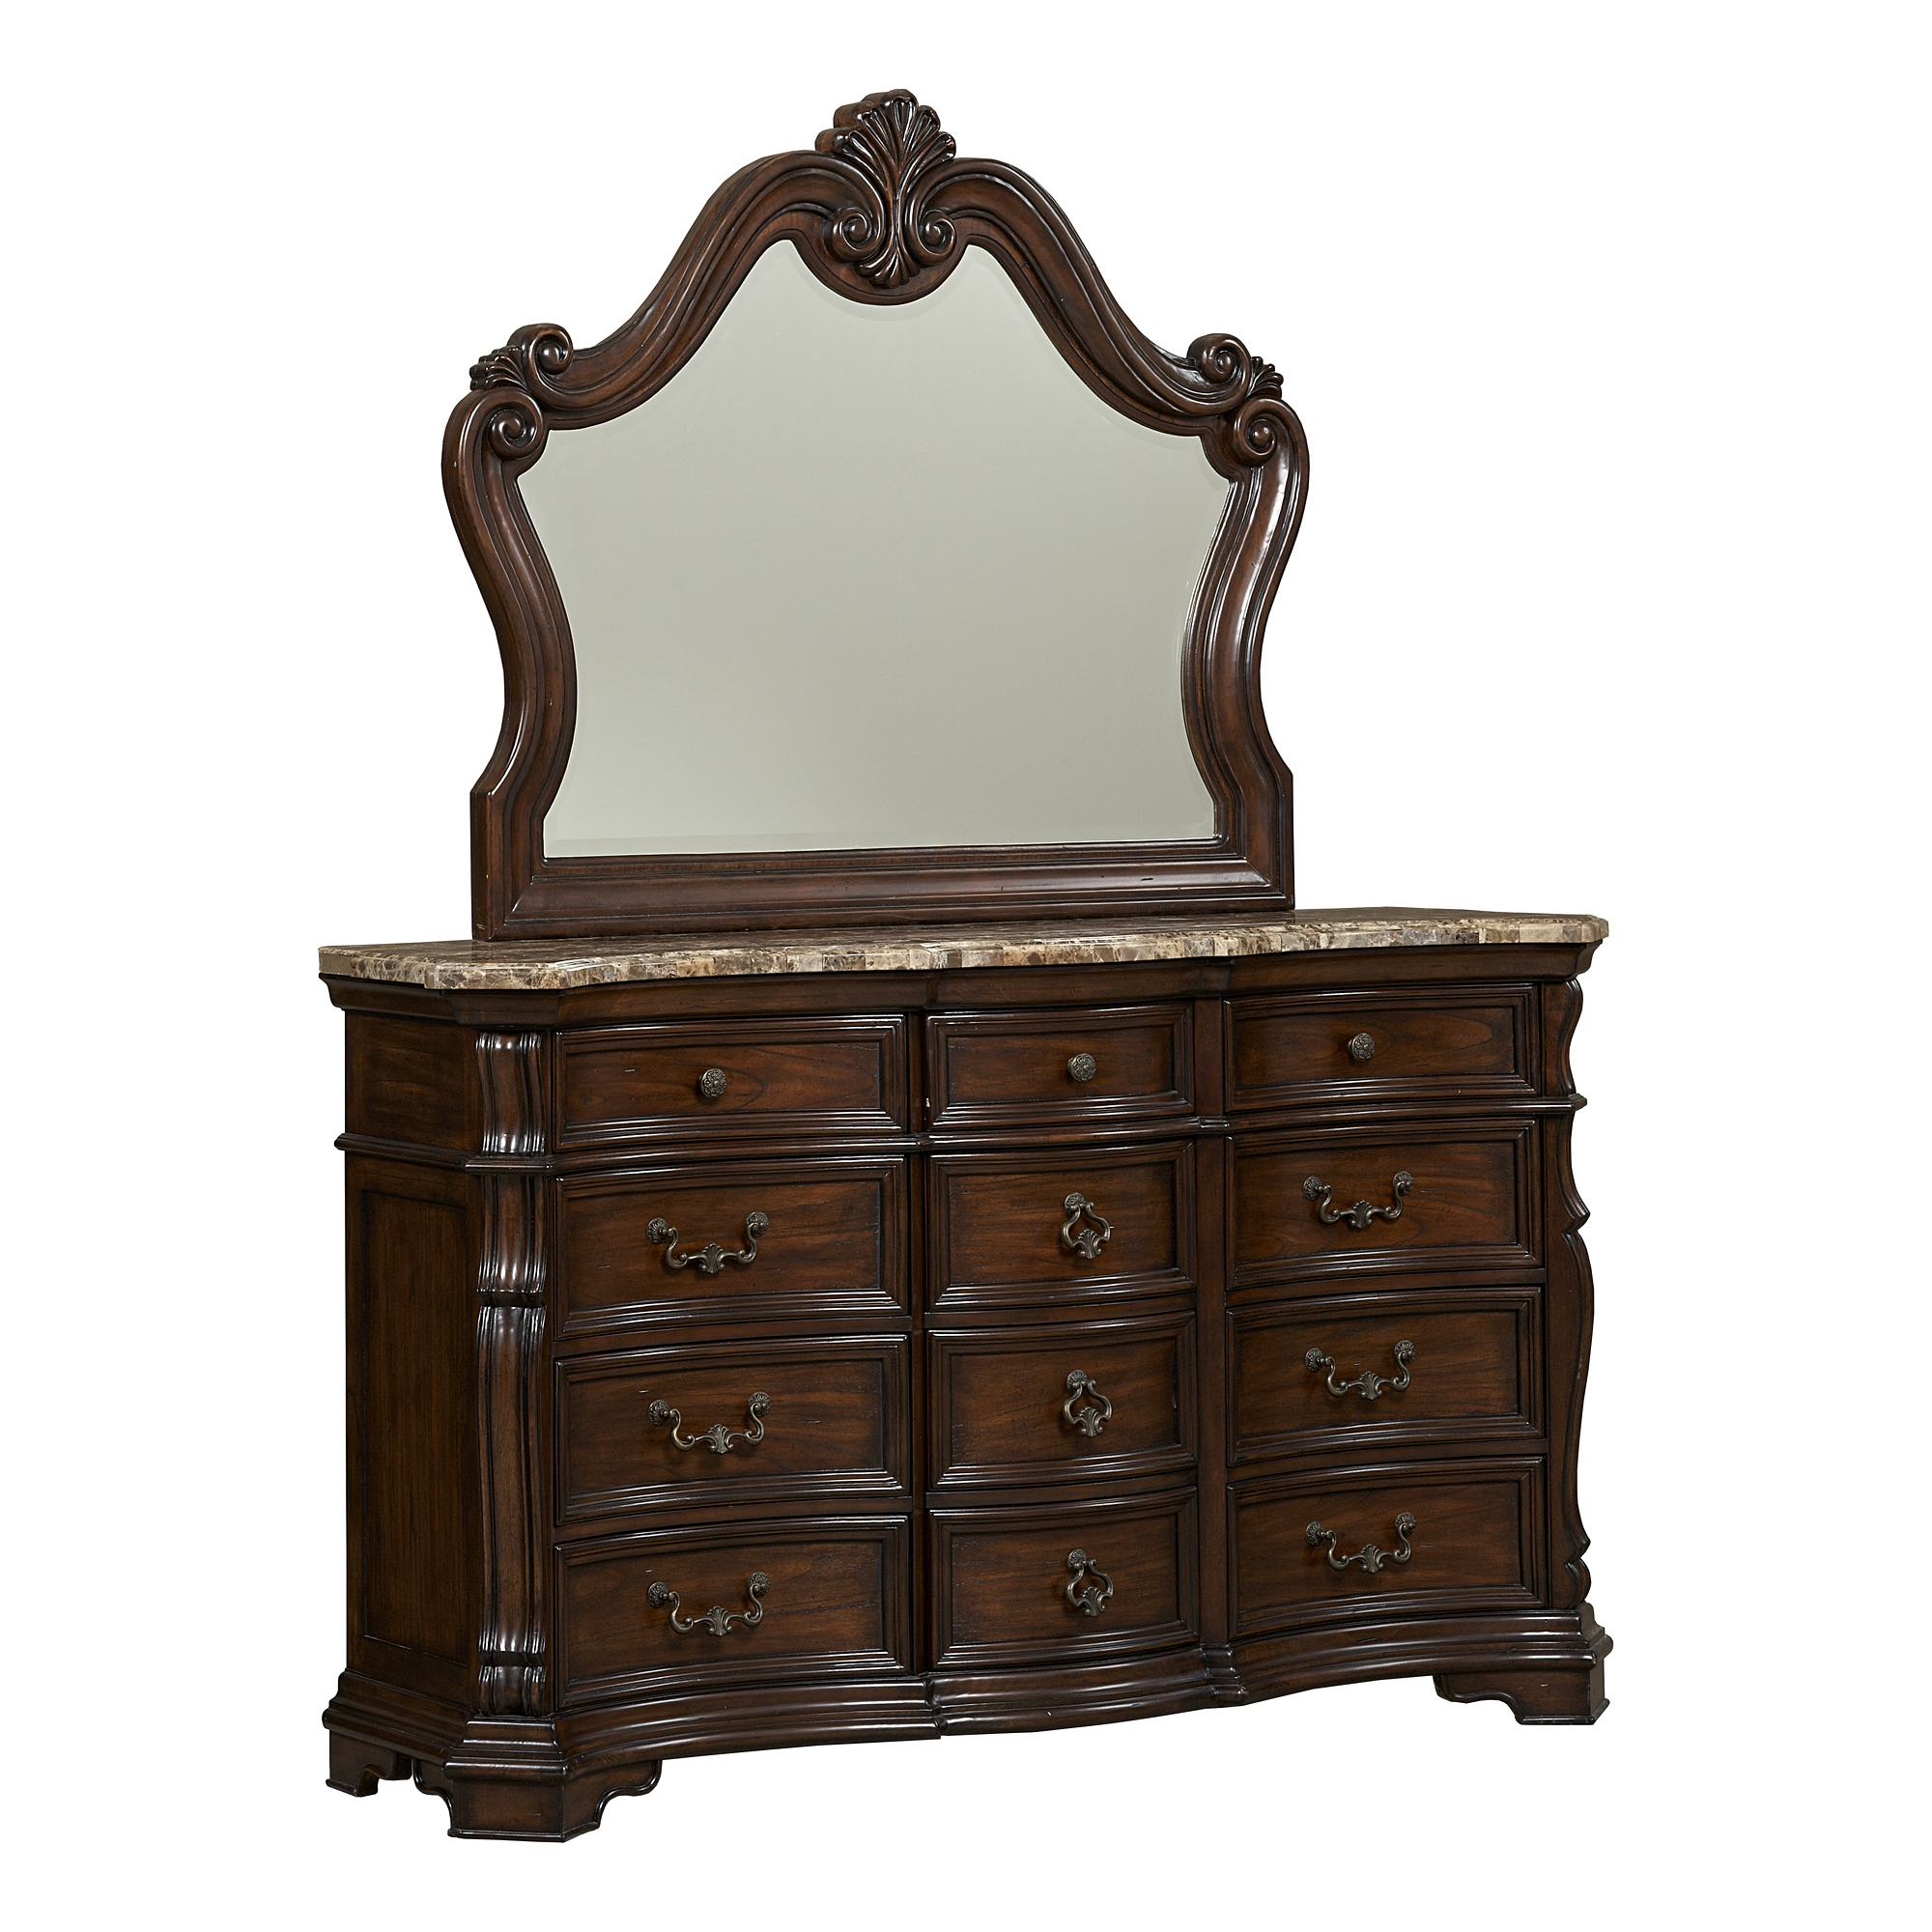 shown item image capitol drawer lighting mirror white magnifying cfm and mirrored company zoe finish dresser in chest glass bassett black